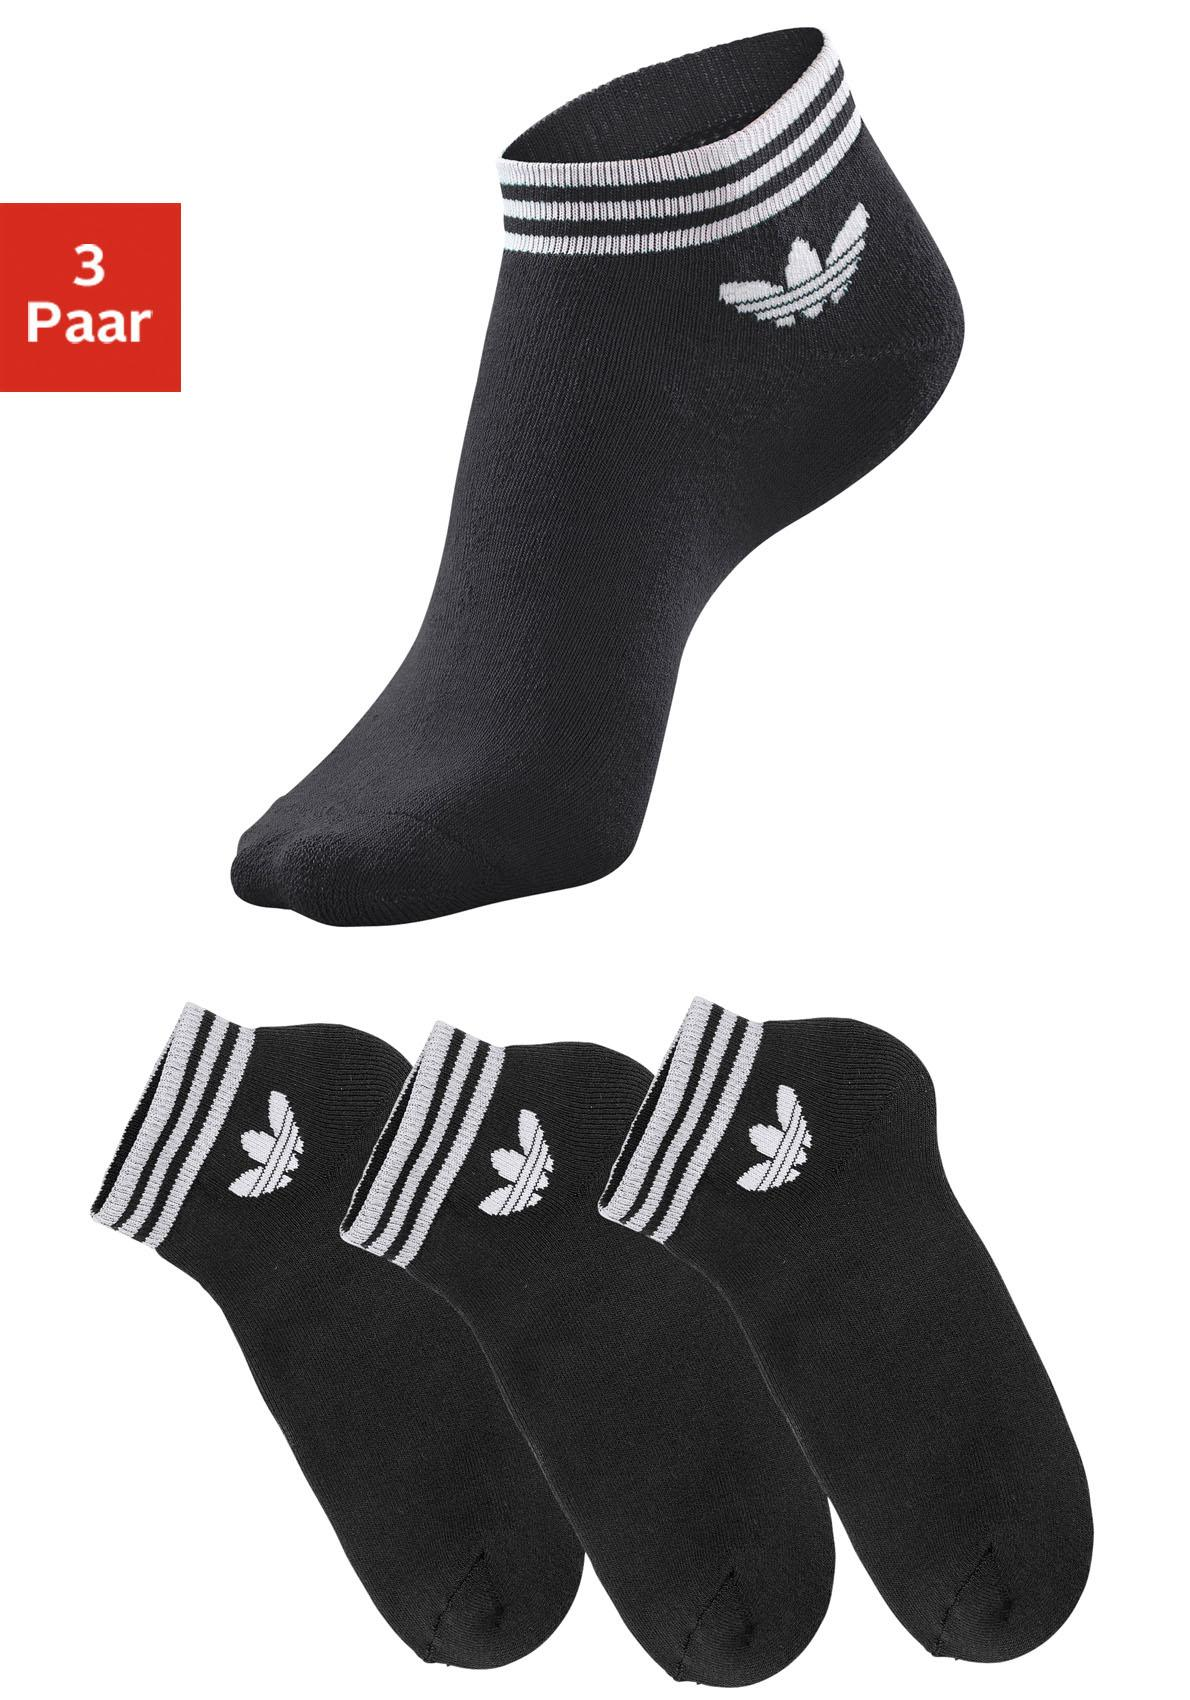 adidas Originals Sneakersocken (3 Paar)